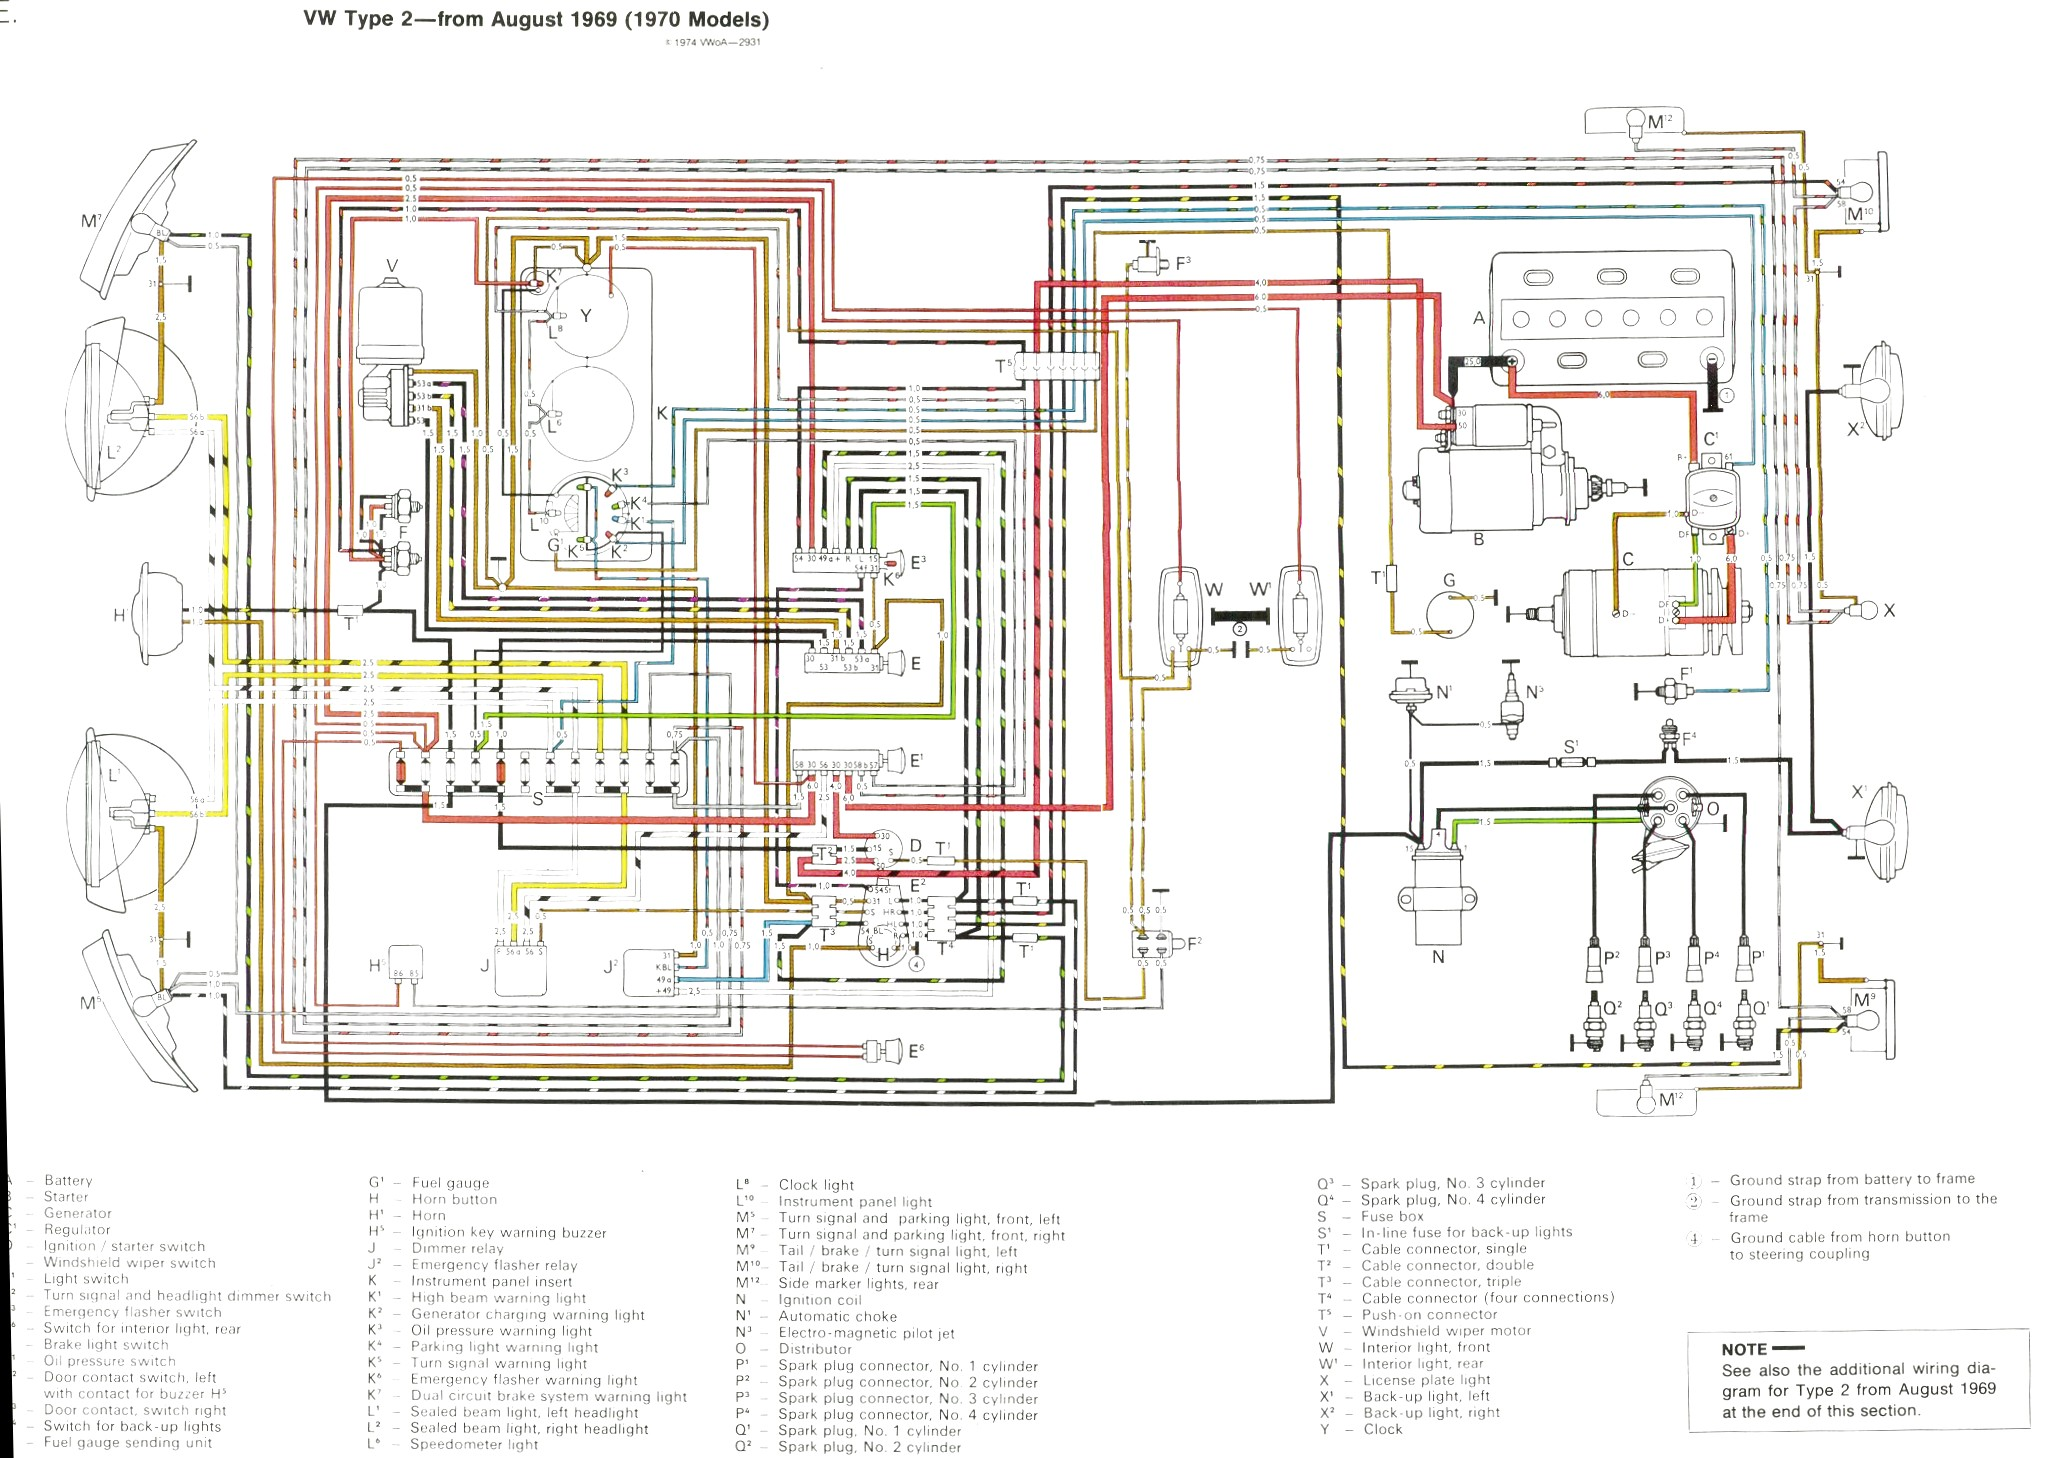 bus 69 70 vintagebus com vw bus (and other) wiring diagrams Wiring Harness Diagram at mifinder.co